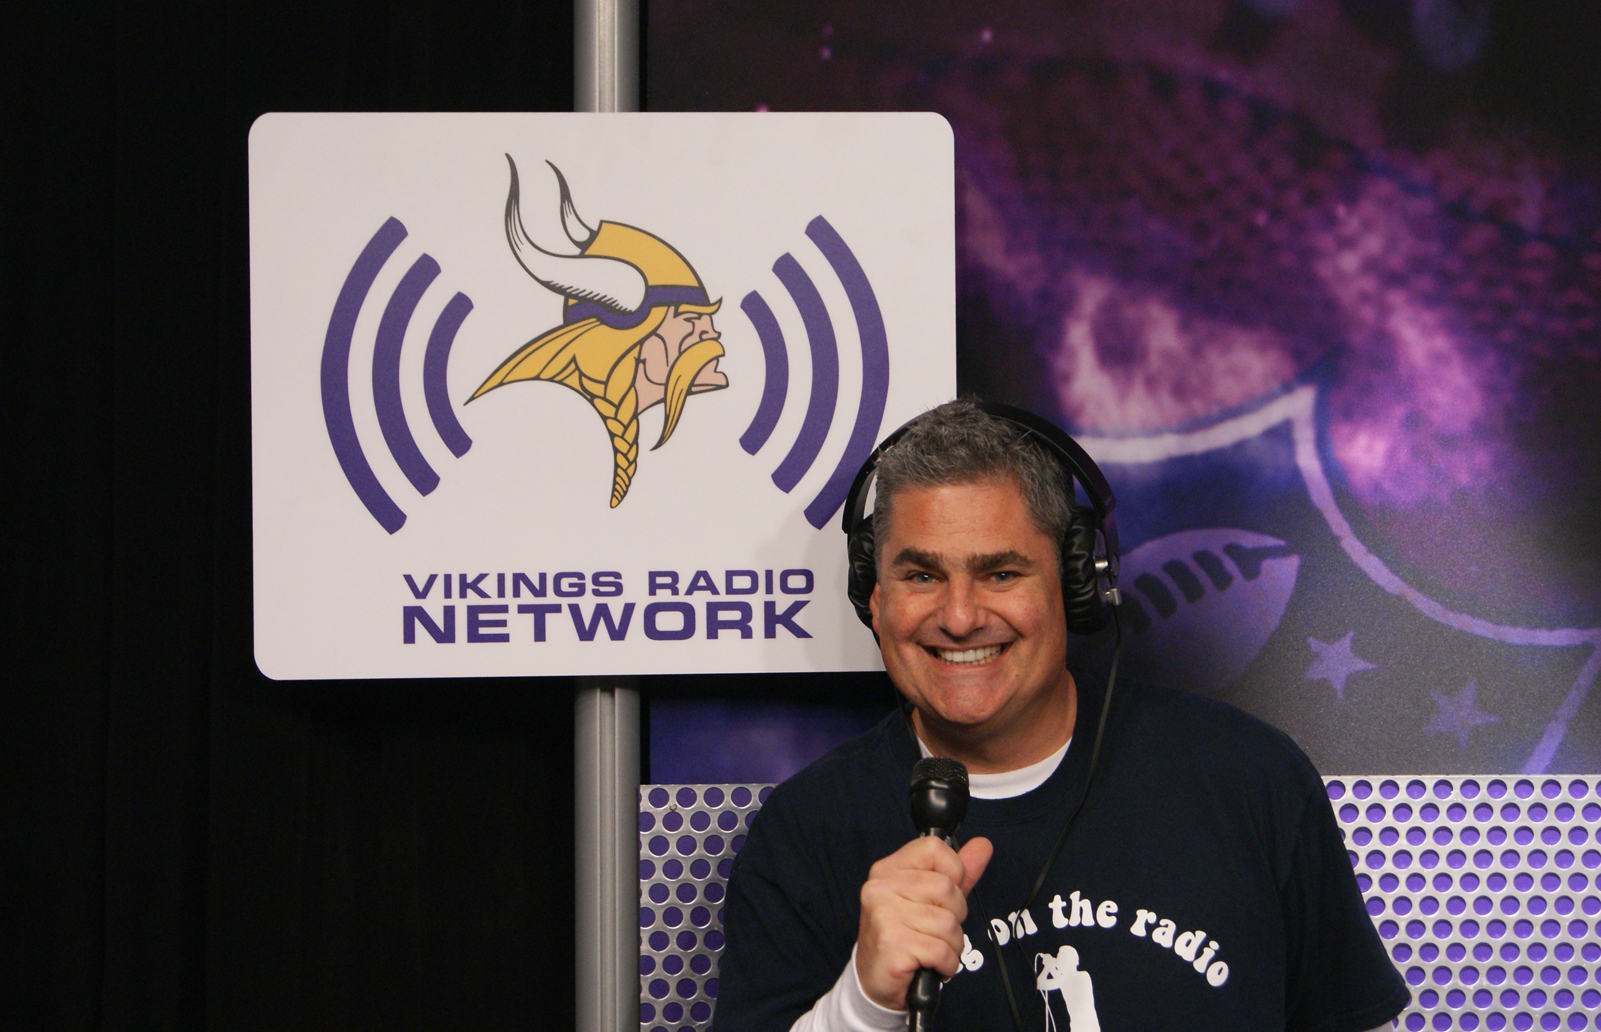 http://purplejesus.files.wordpress.com/2012/08/paul-allen-vikings-kfan.jpg